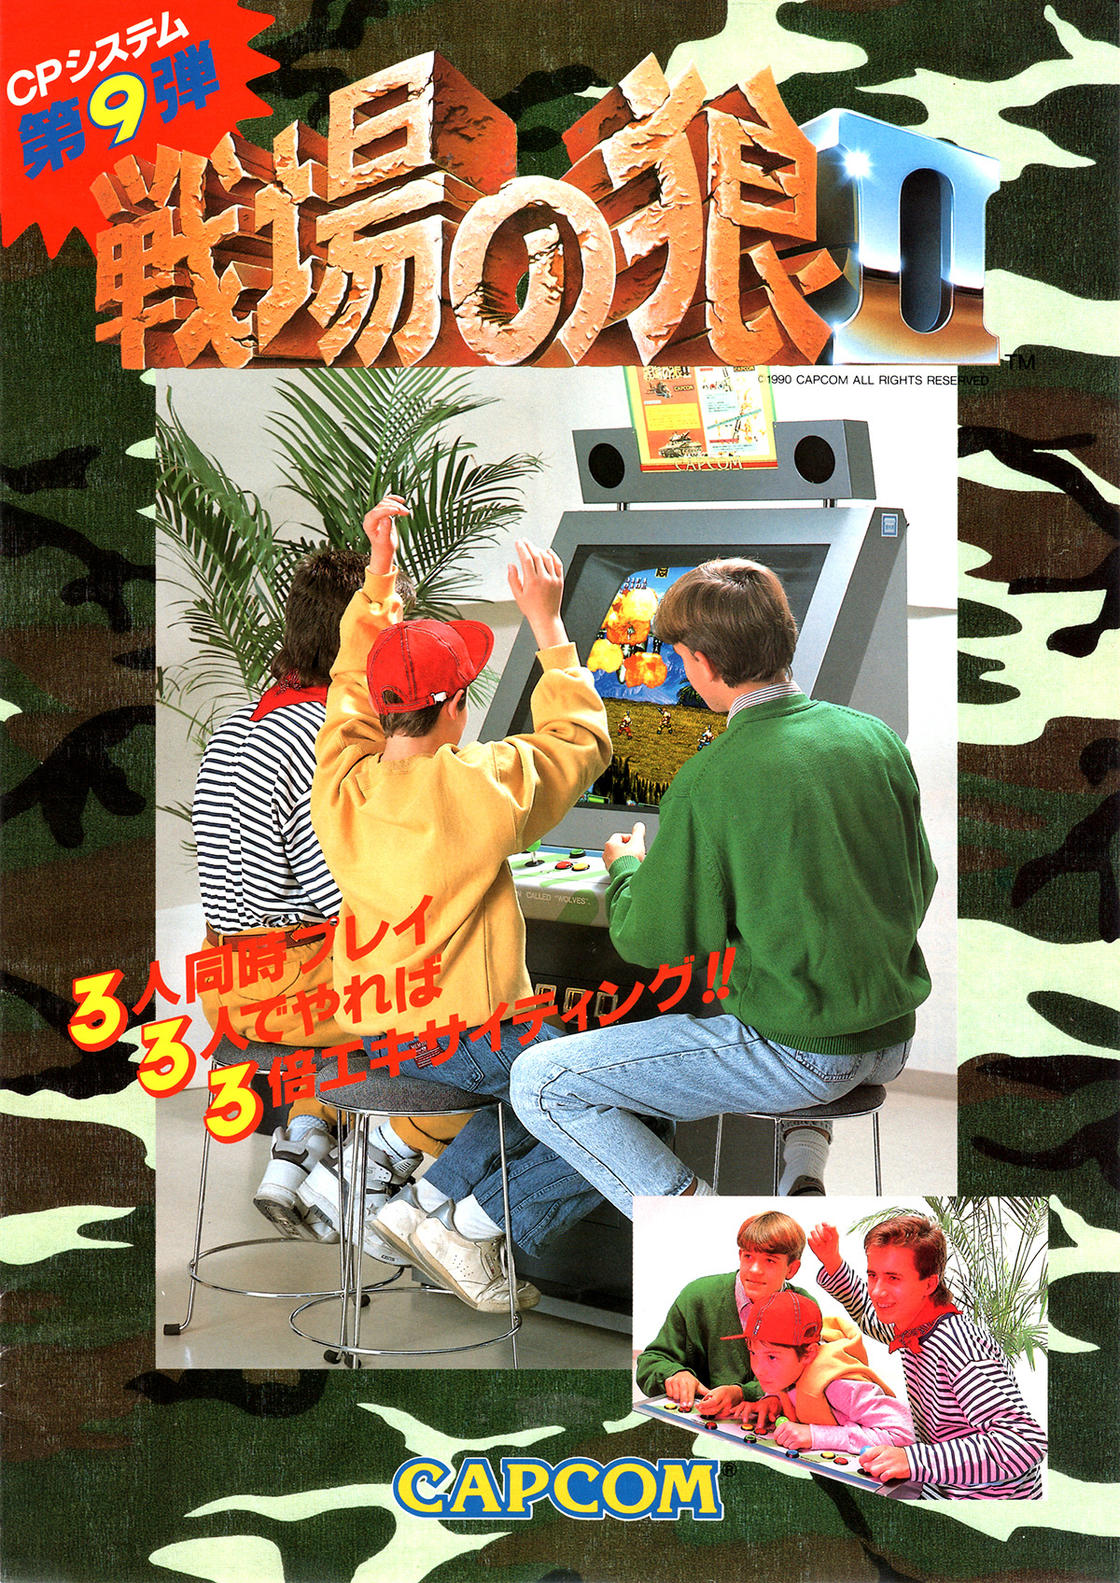 publicites-japonaises-jeux-video-1980-11.jpg